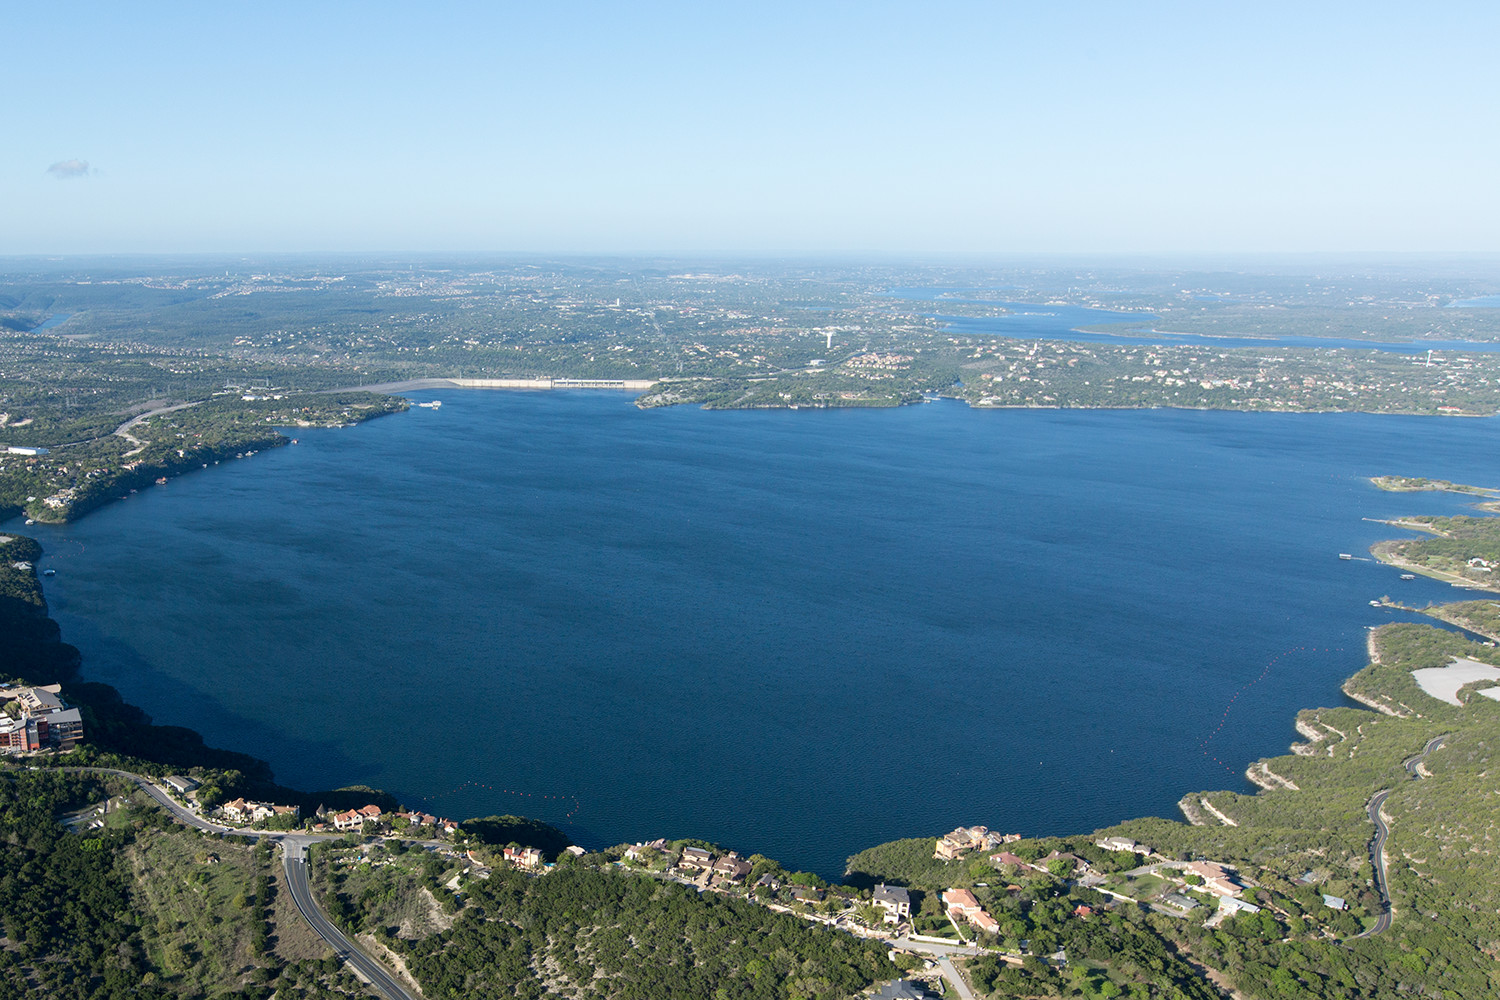 MARCH 2016: These aerial photographs of the Great Basin and Sometimes Islands of Lake Travis show the effects of the drought in Central Texas from March 2013 versus the much fuller lake in March 2016. The lake was 35 percent full in 2013, and the lake today is now 92 percent full; a difference of about 50 feet.